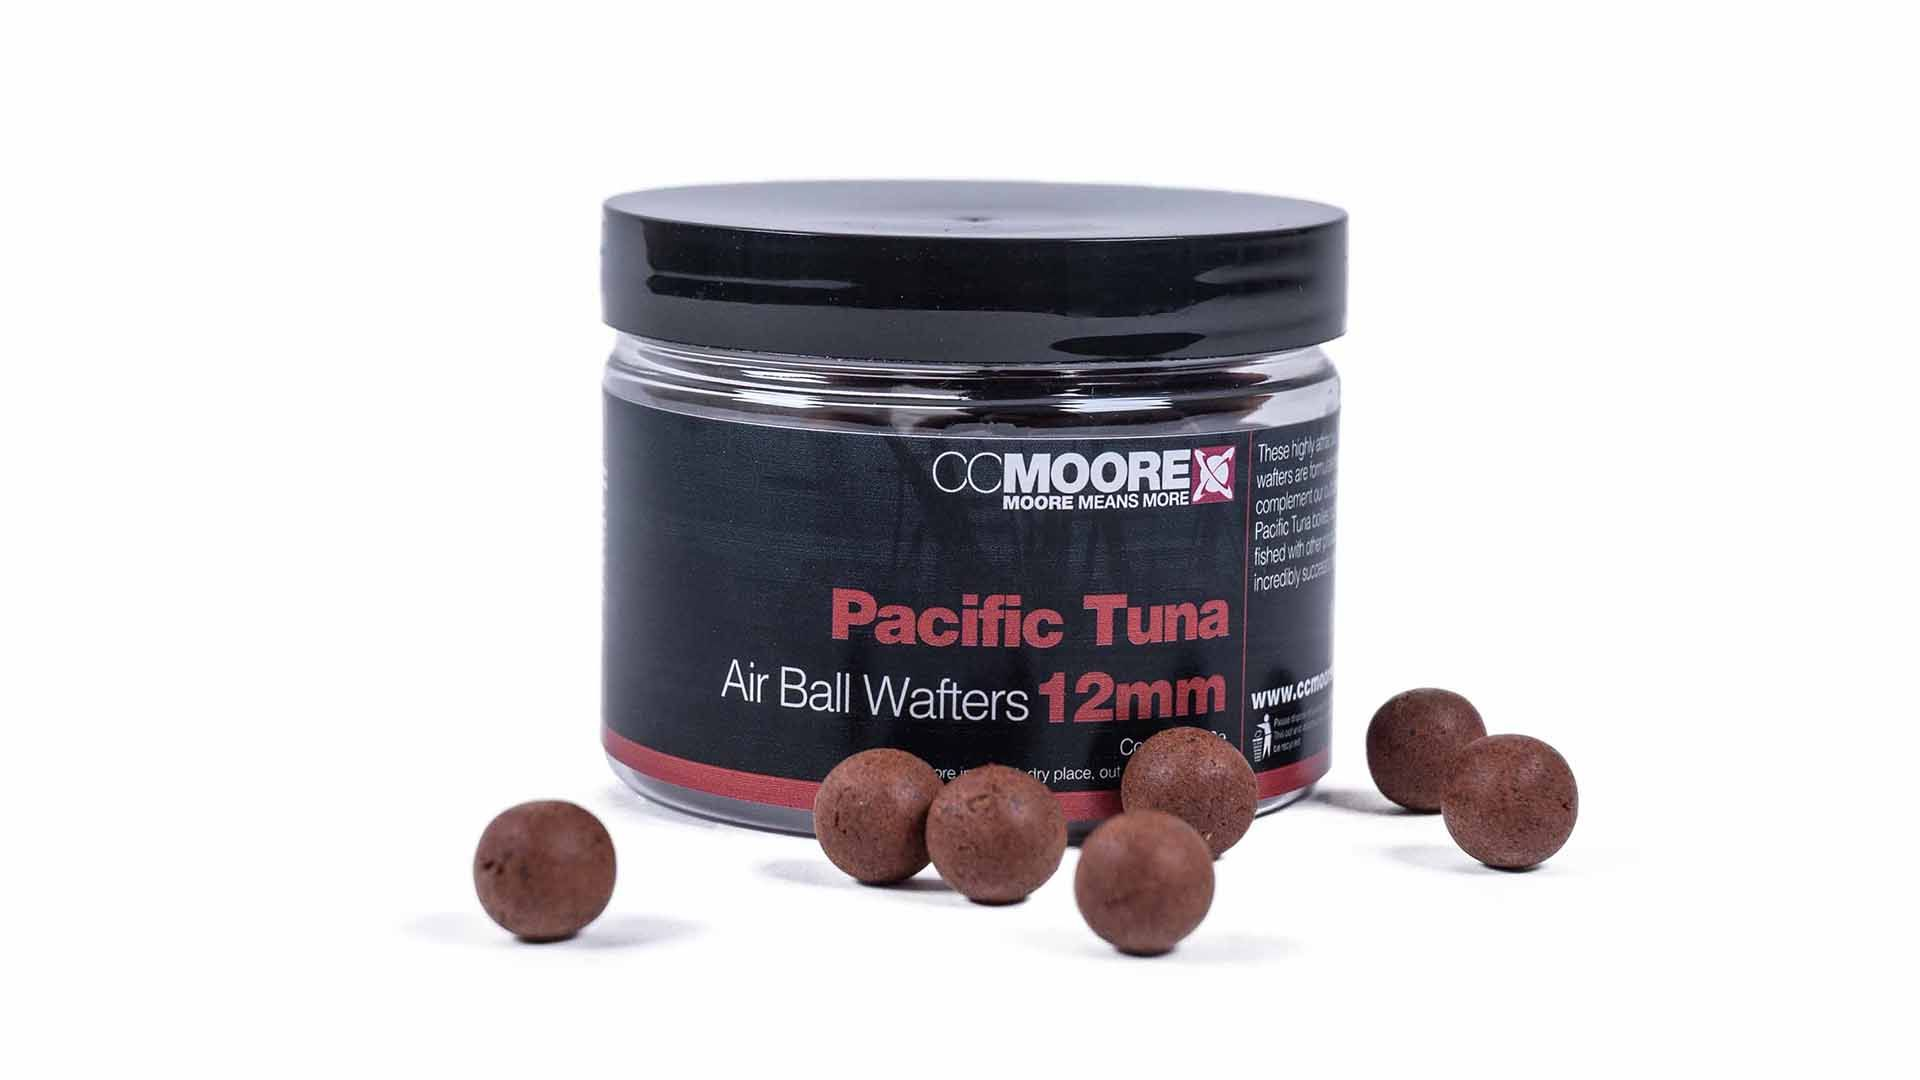 CC Moore Pacific Tuna 12mm Wafters